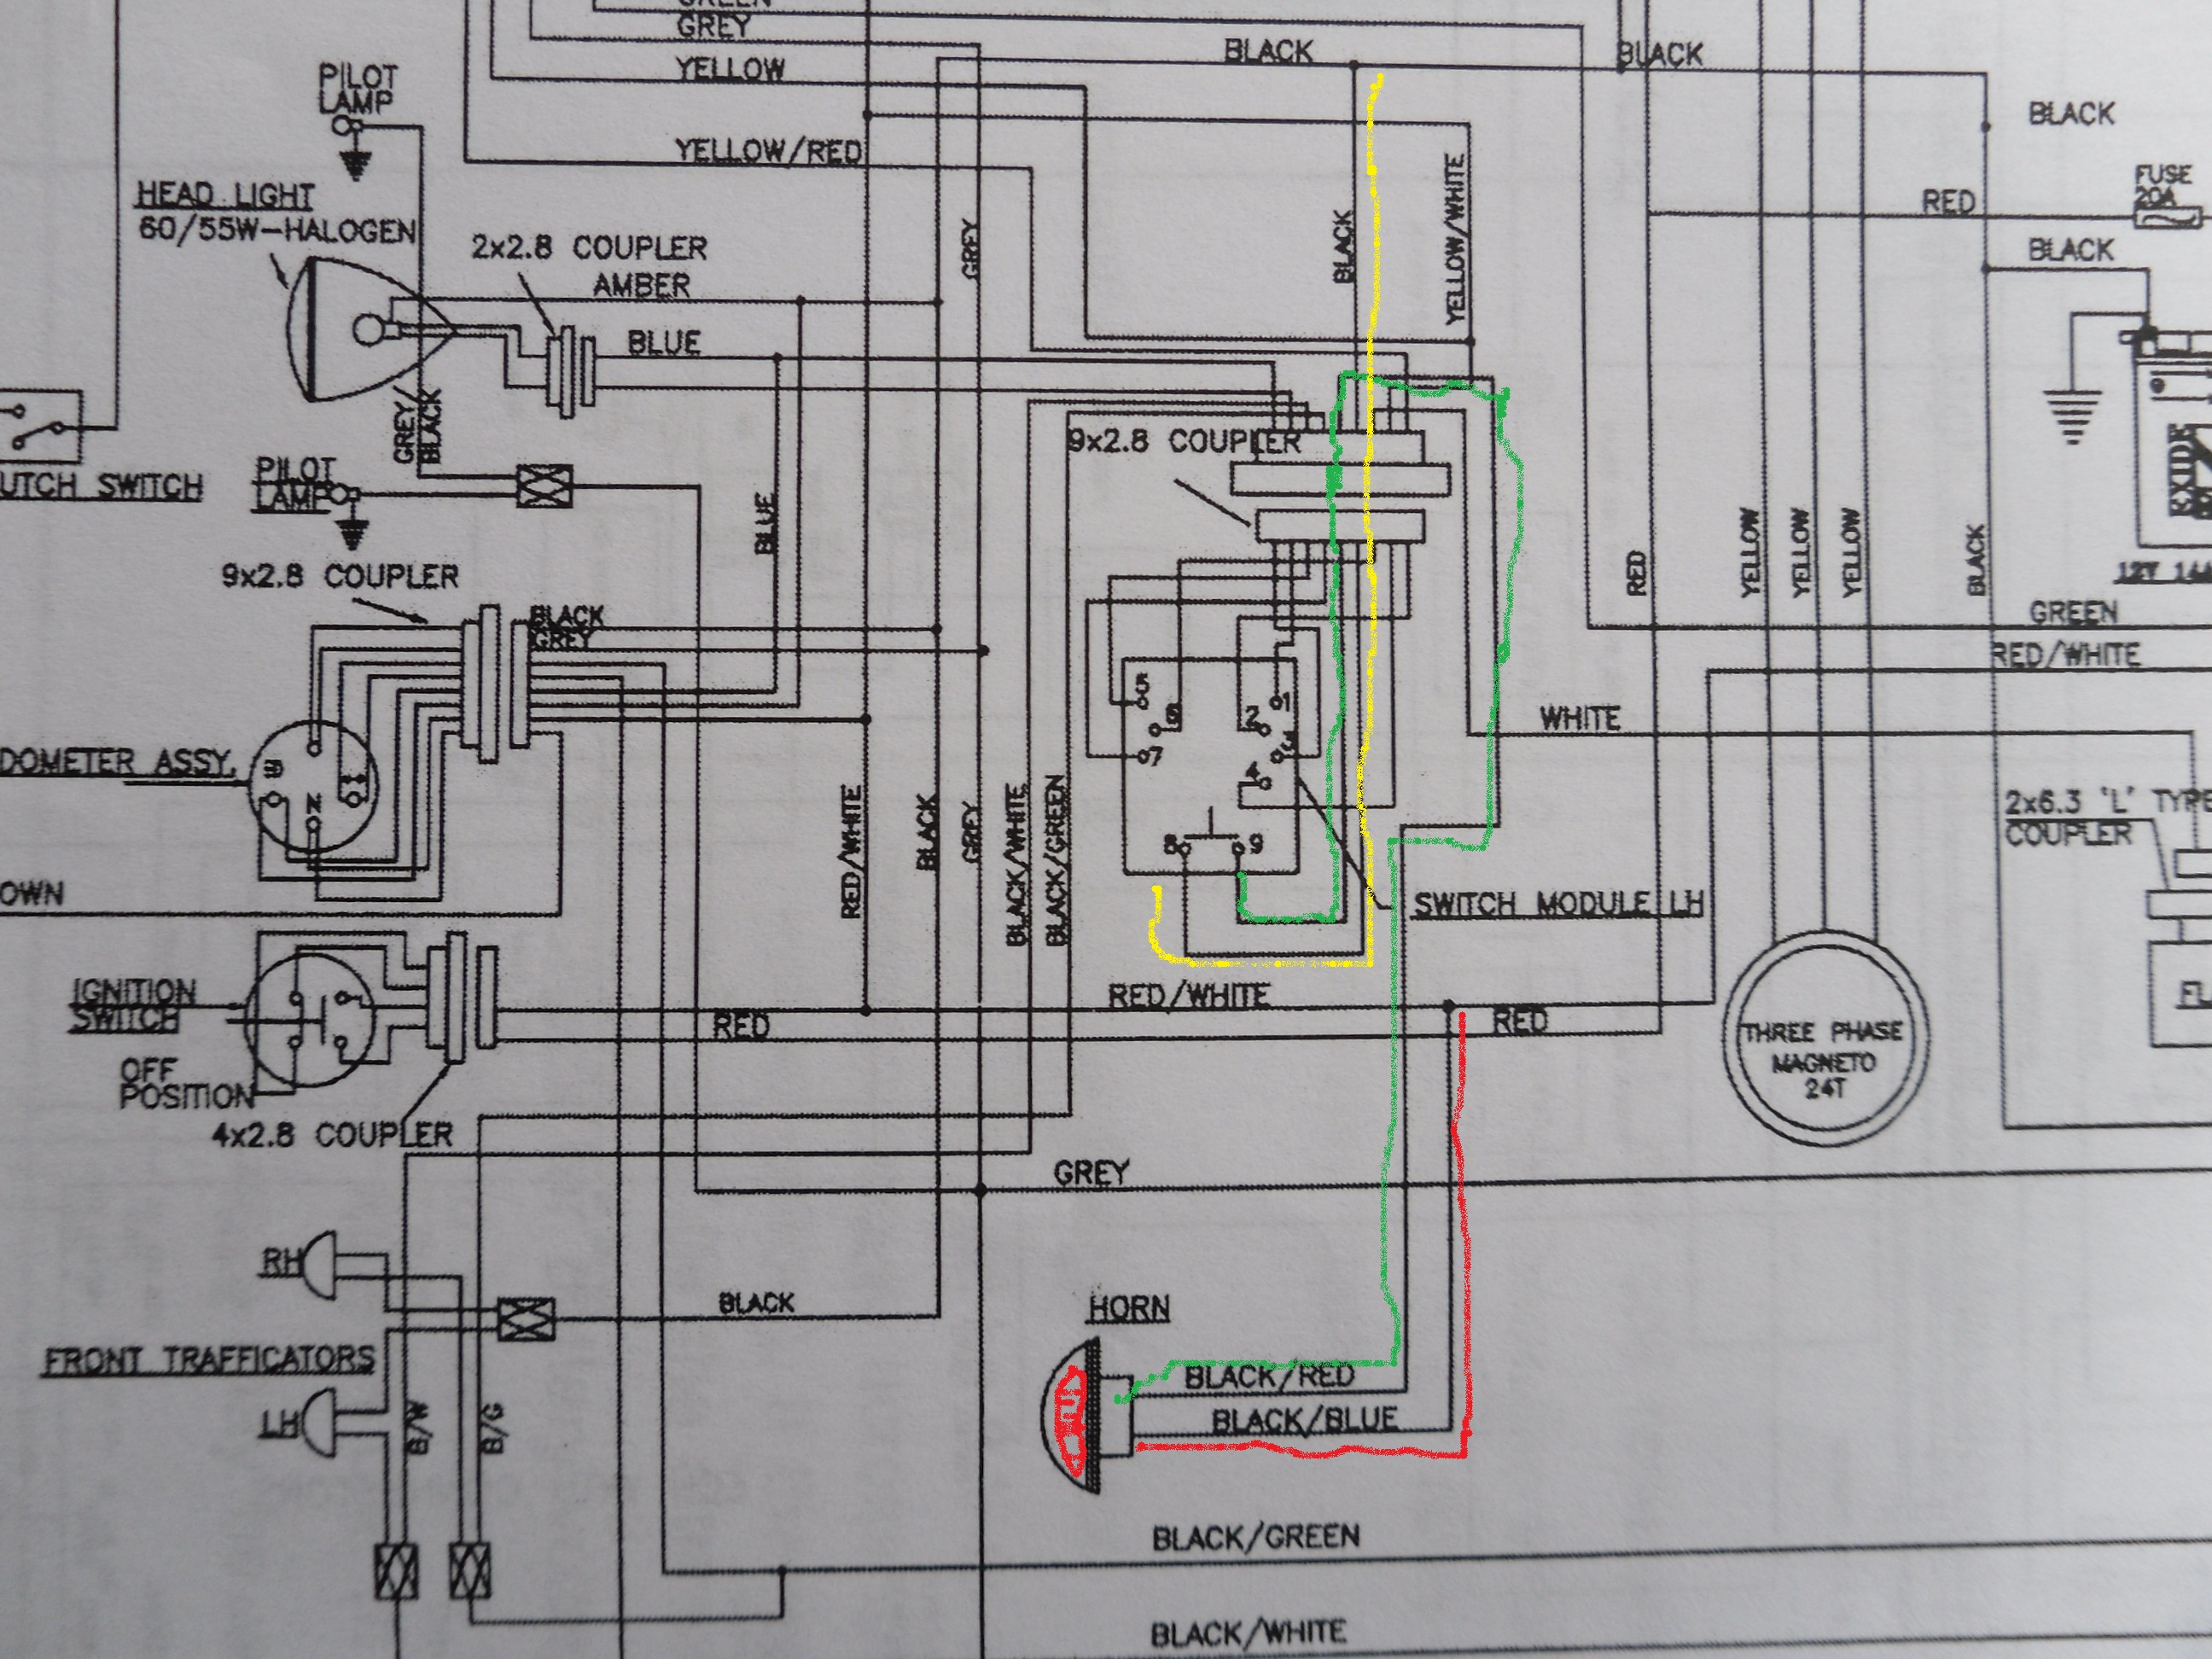 Hot or Ground wire to horn button?Unofficial Royal Enfield Community Forum